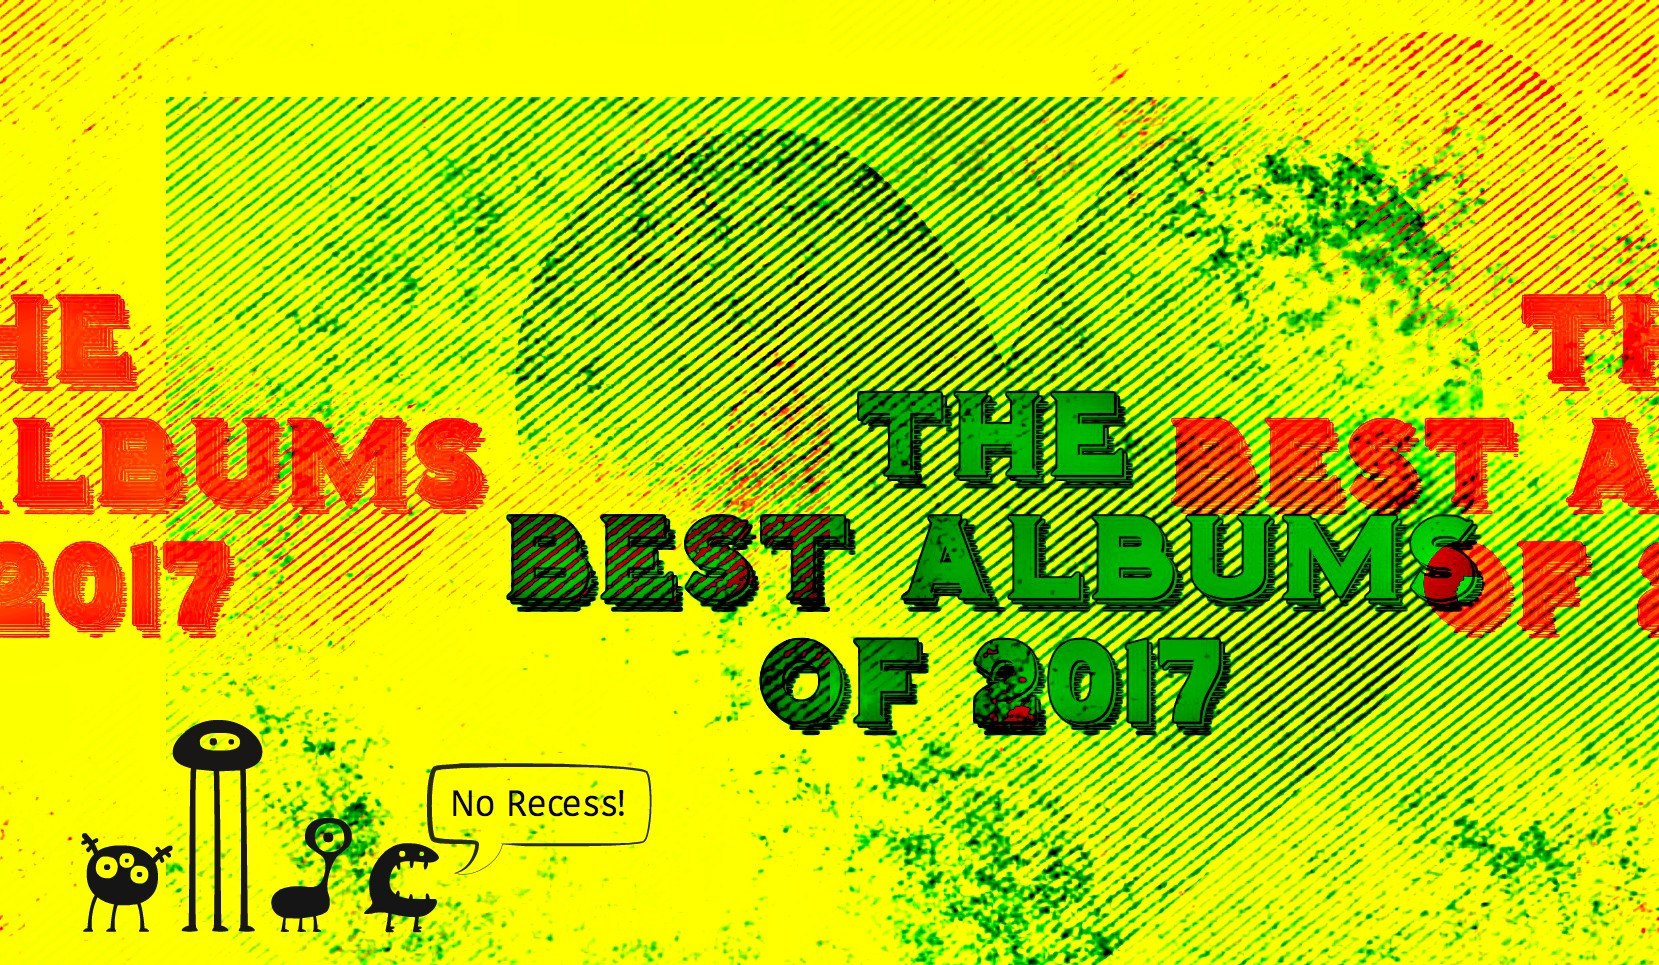 The best albums of 2017 no recess magazine not the last word the best albums of 2017 no recess magazine not the last word in anything malvernweather Image collections